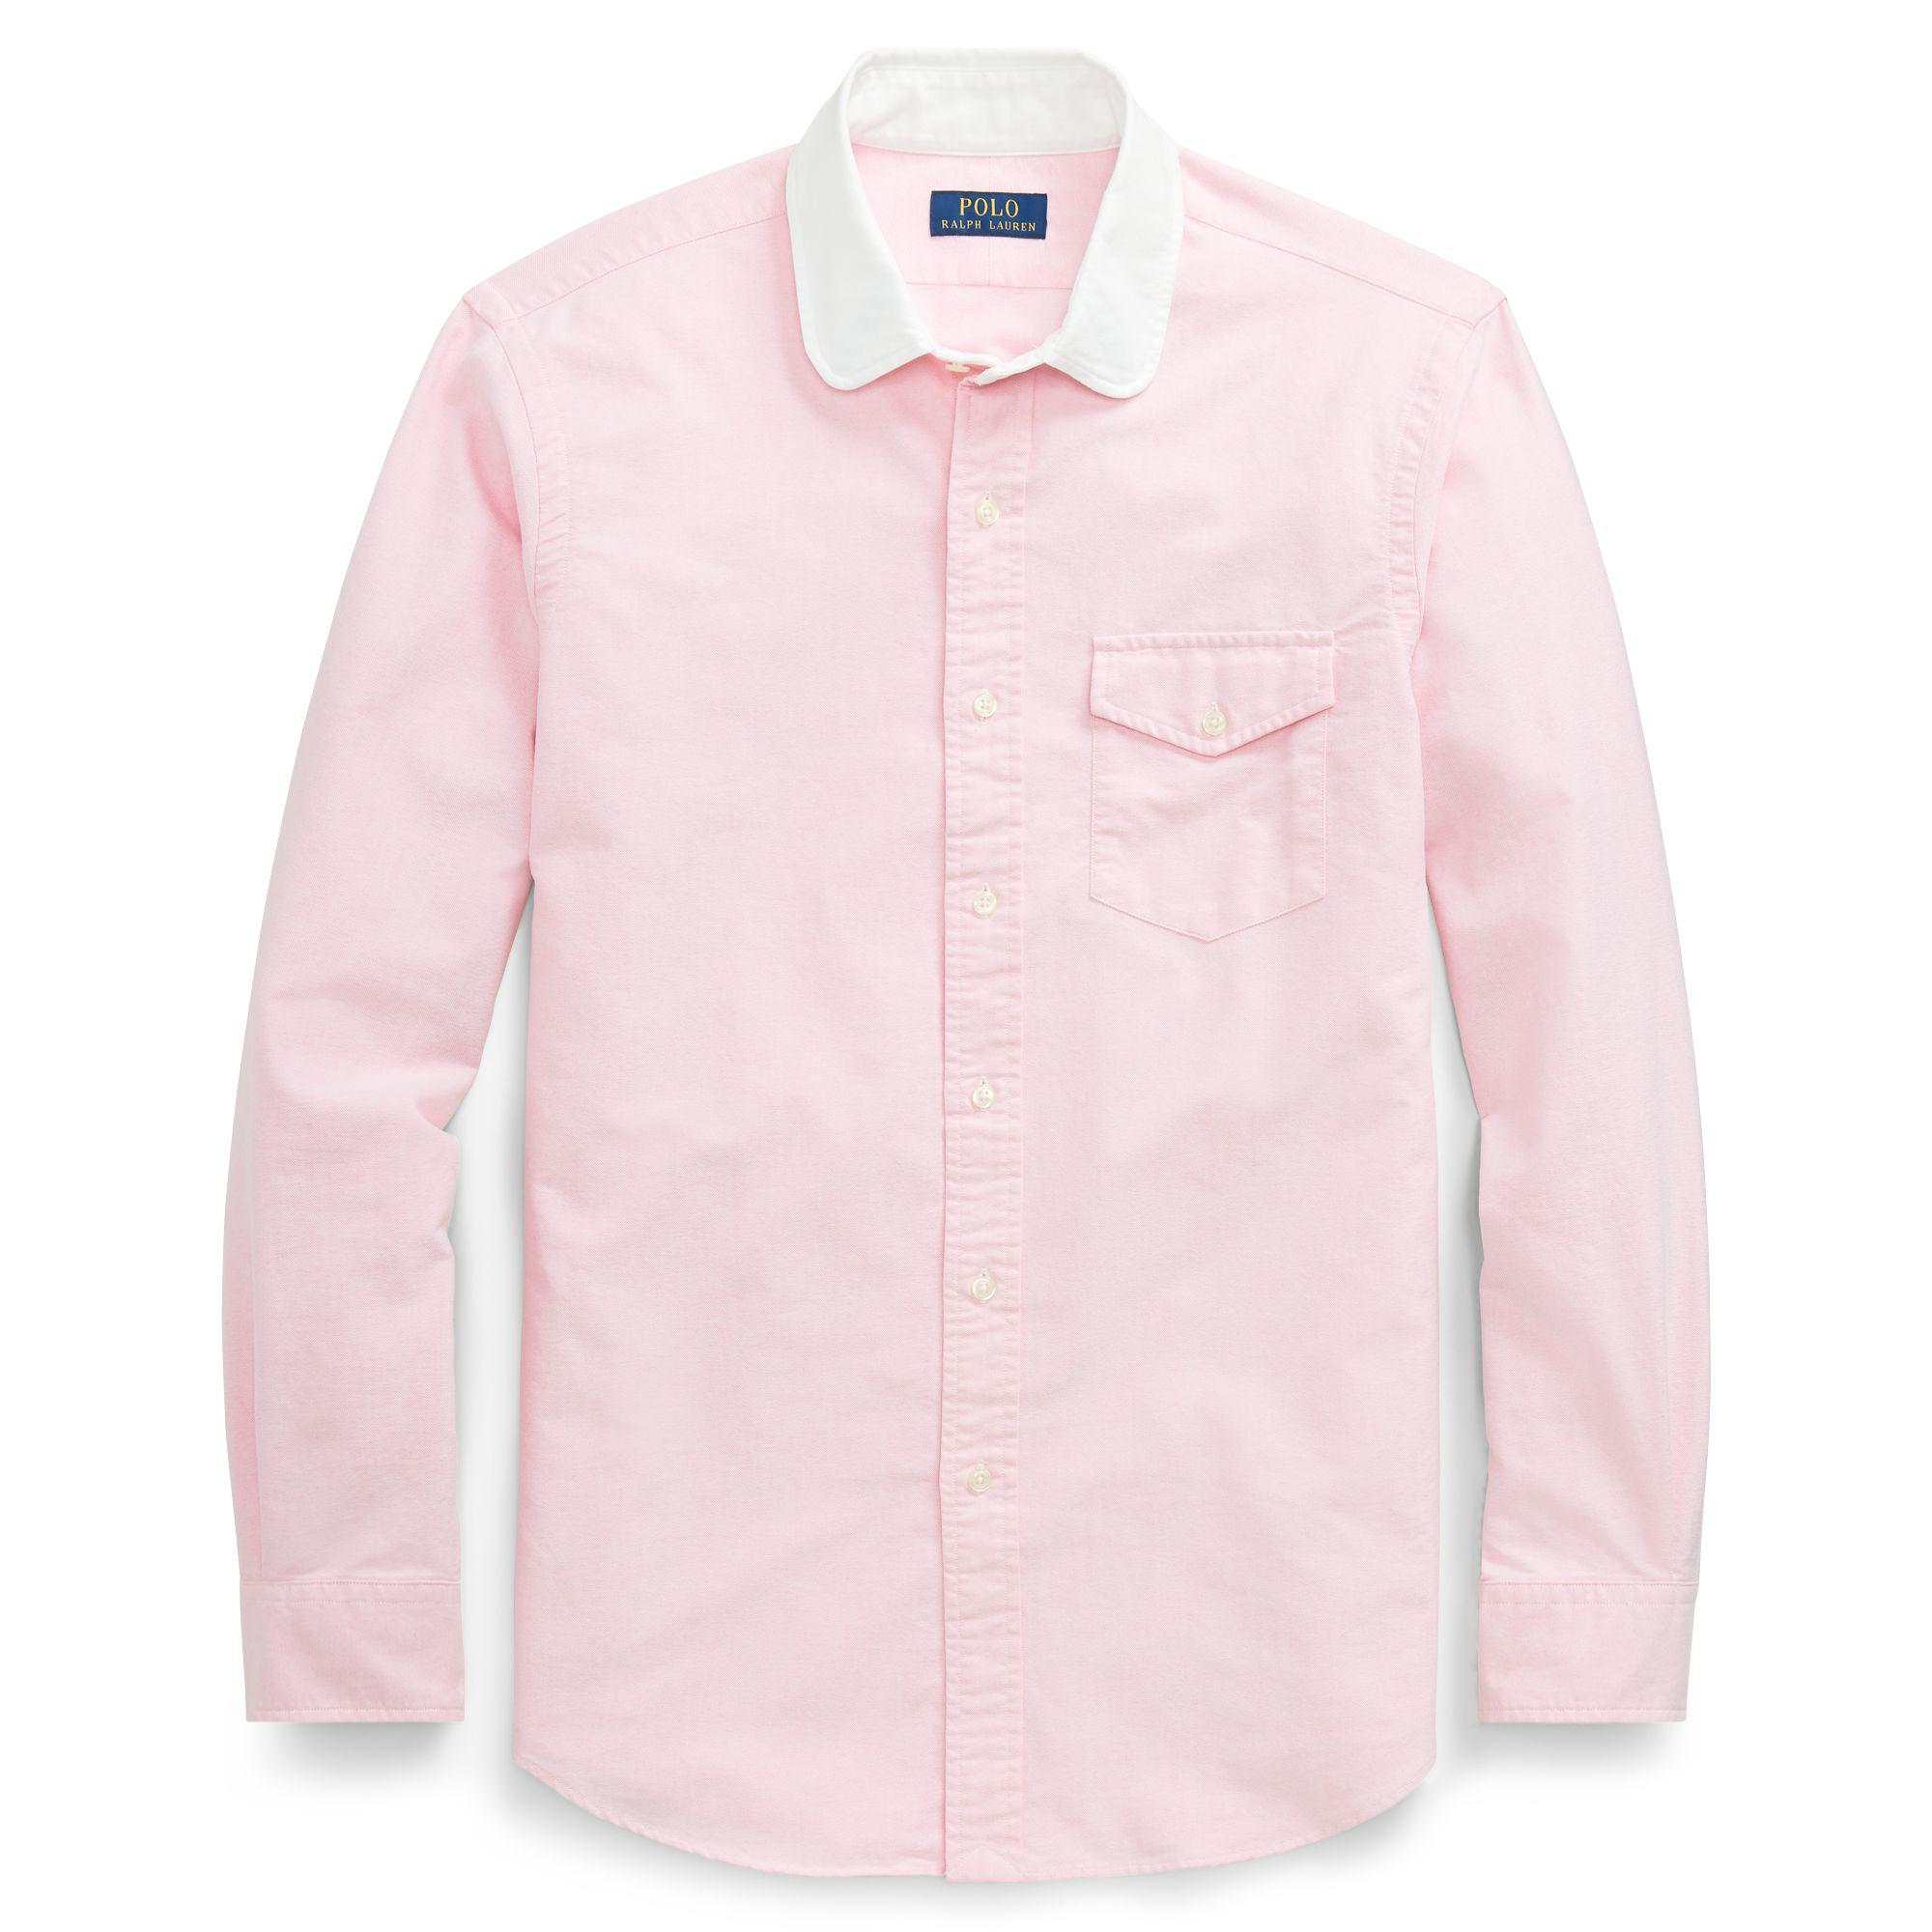 ac1e8117c122e Polo Ralph Lauren Classic Fit Oxford Shirt in Pink for Men - Lyst